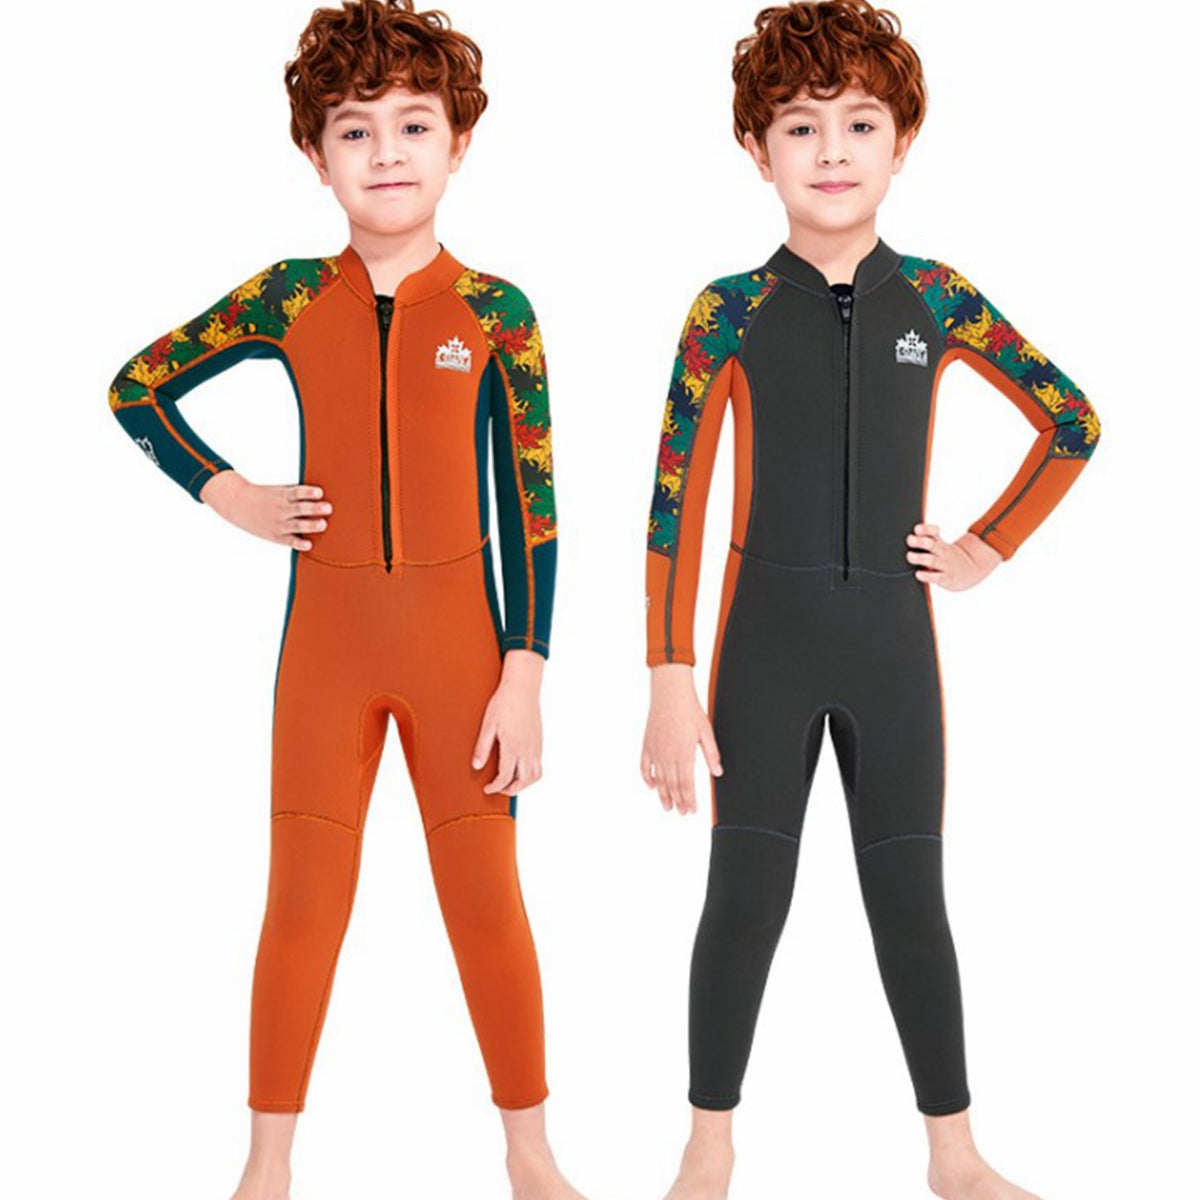 VIFUUR Kid's 2.5mm Wetsuit One-piece Long Sleeve Warm Bathing Suit Sunscreen